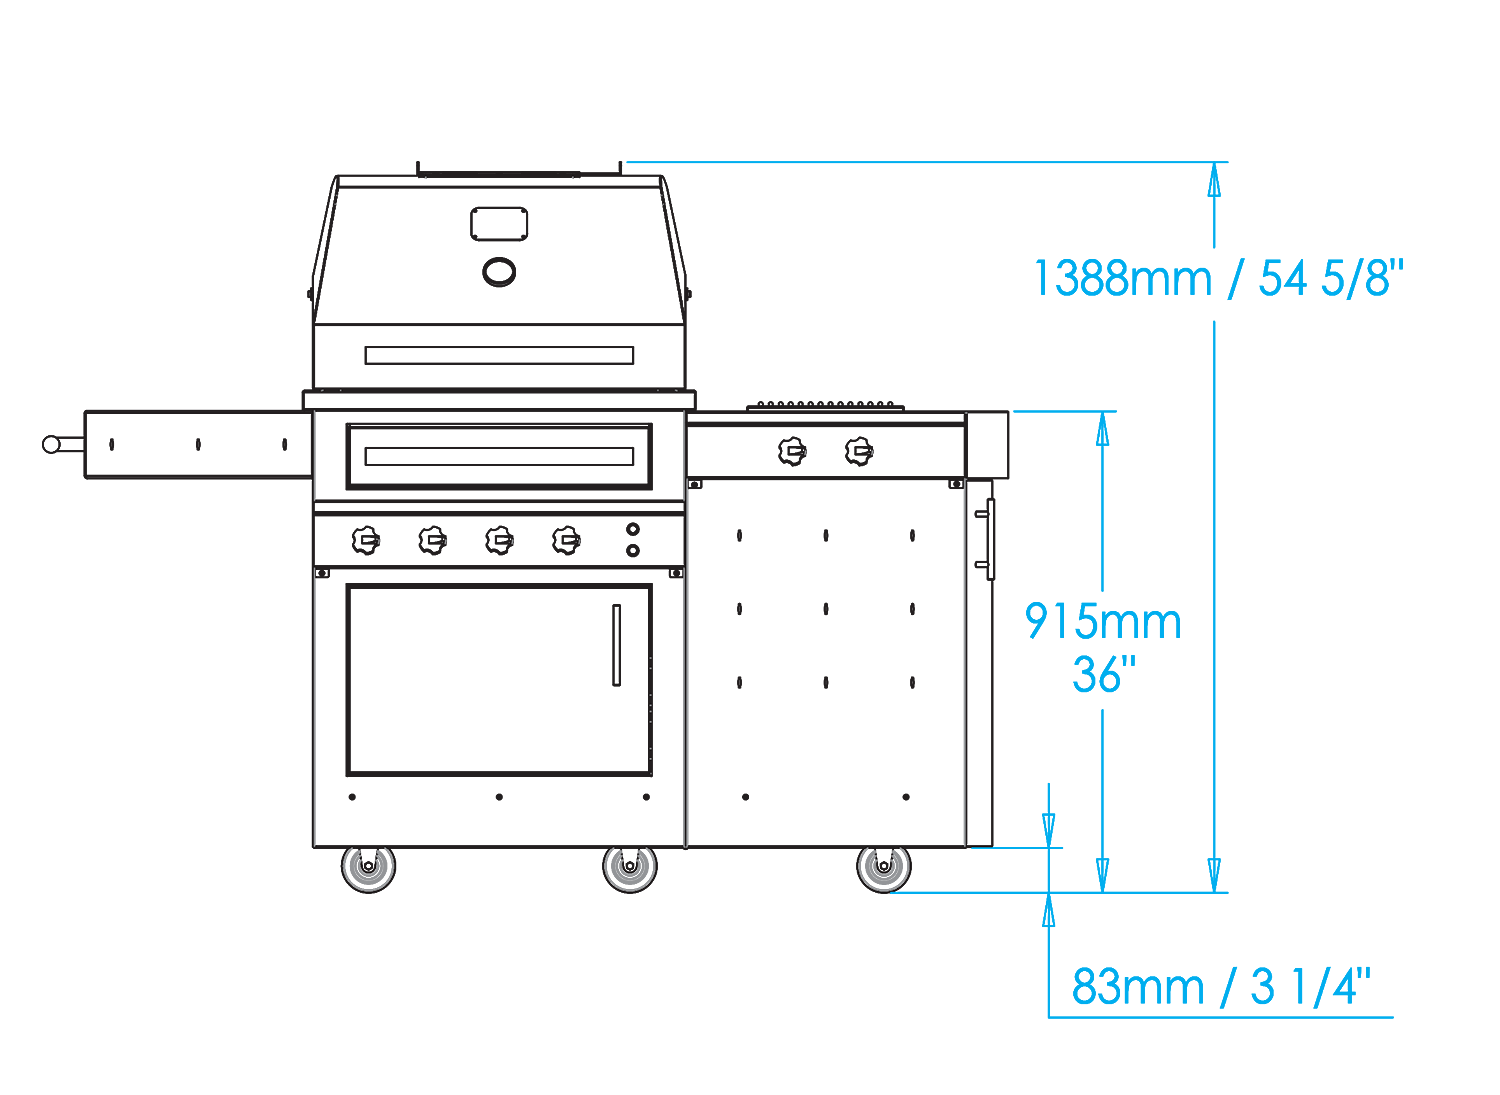 K500 Freestanding Hybrid Fire Grill with Side Burner Dimensions Image